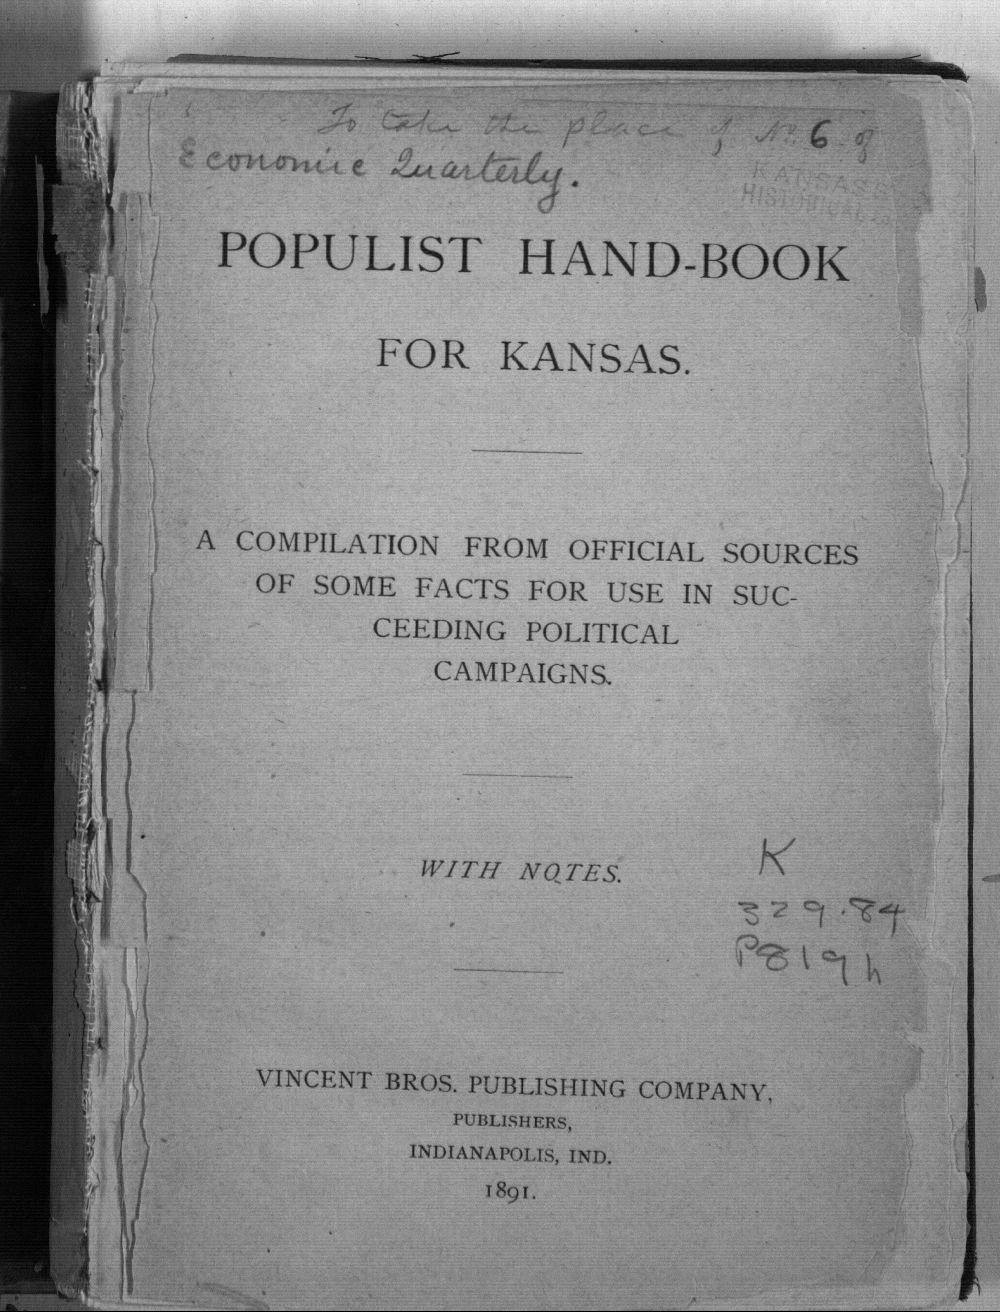 Populist hand-book for Kansas. A compilation from official sources of some facts for use in succeeding political campaigns - Title Page